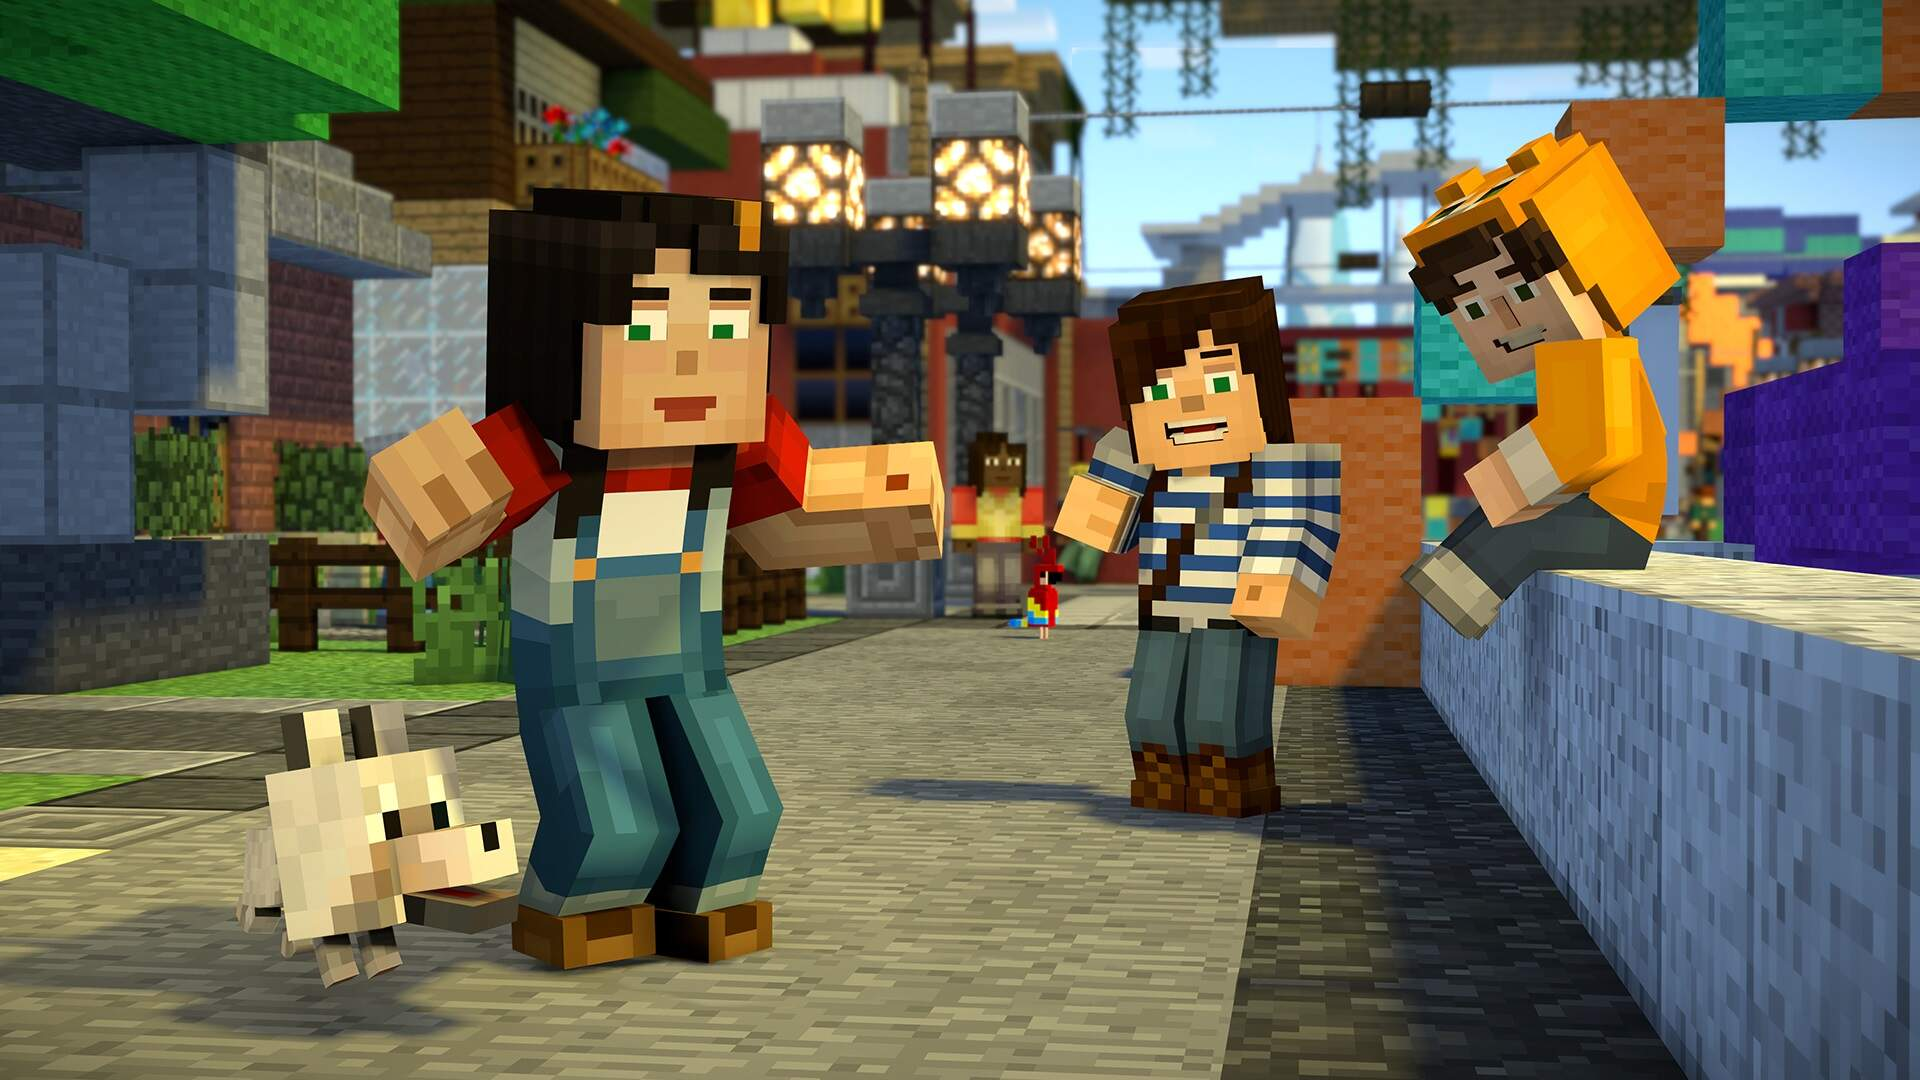 Minecraft: Story Mode Episodes Re-Listed At $100 Apiece On Xbox Store To Deter New Purchases